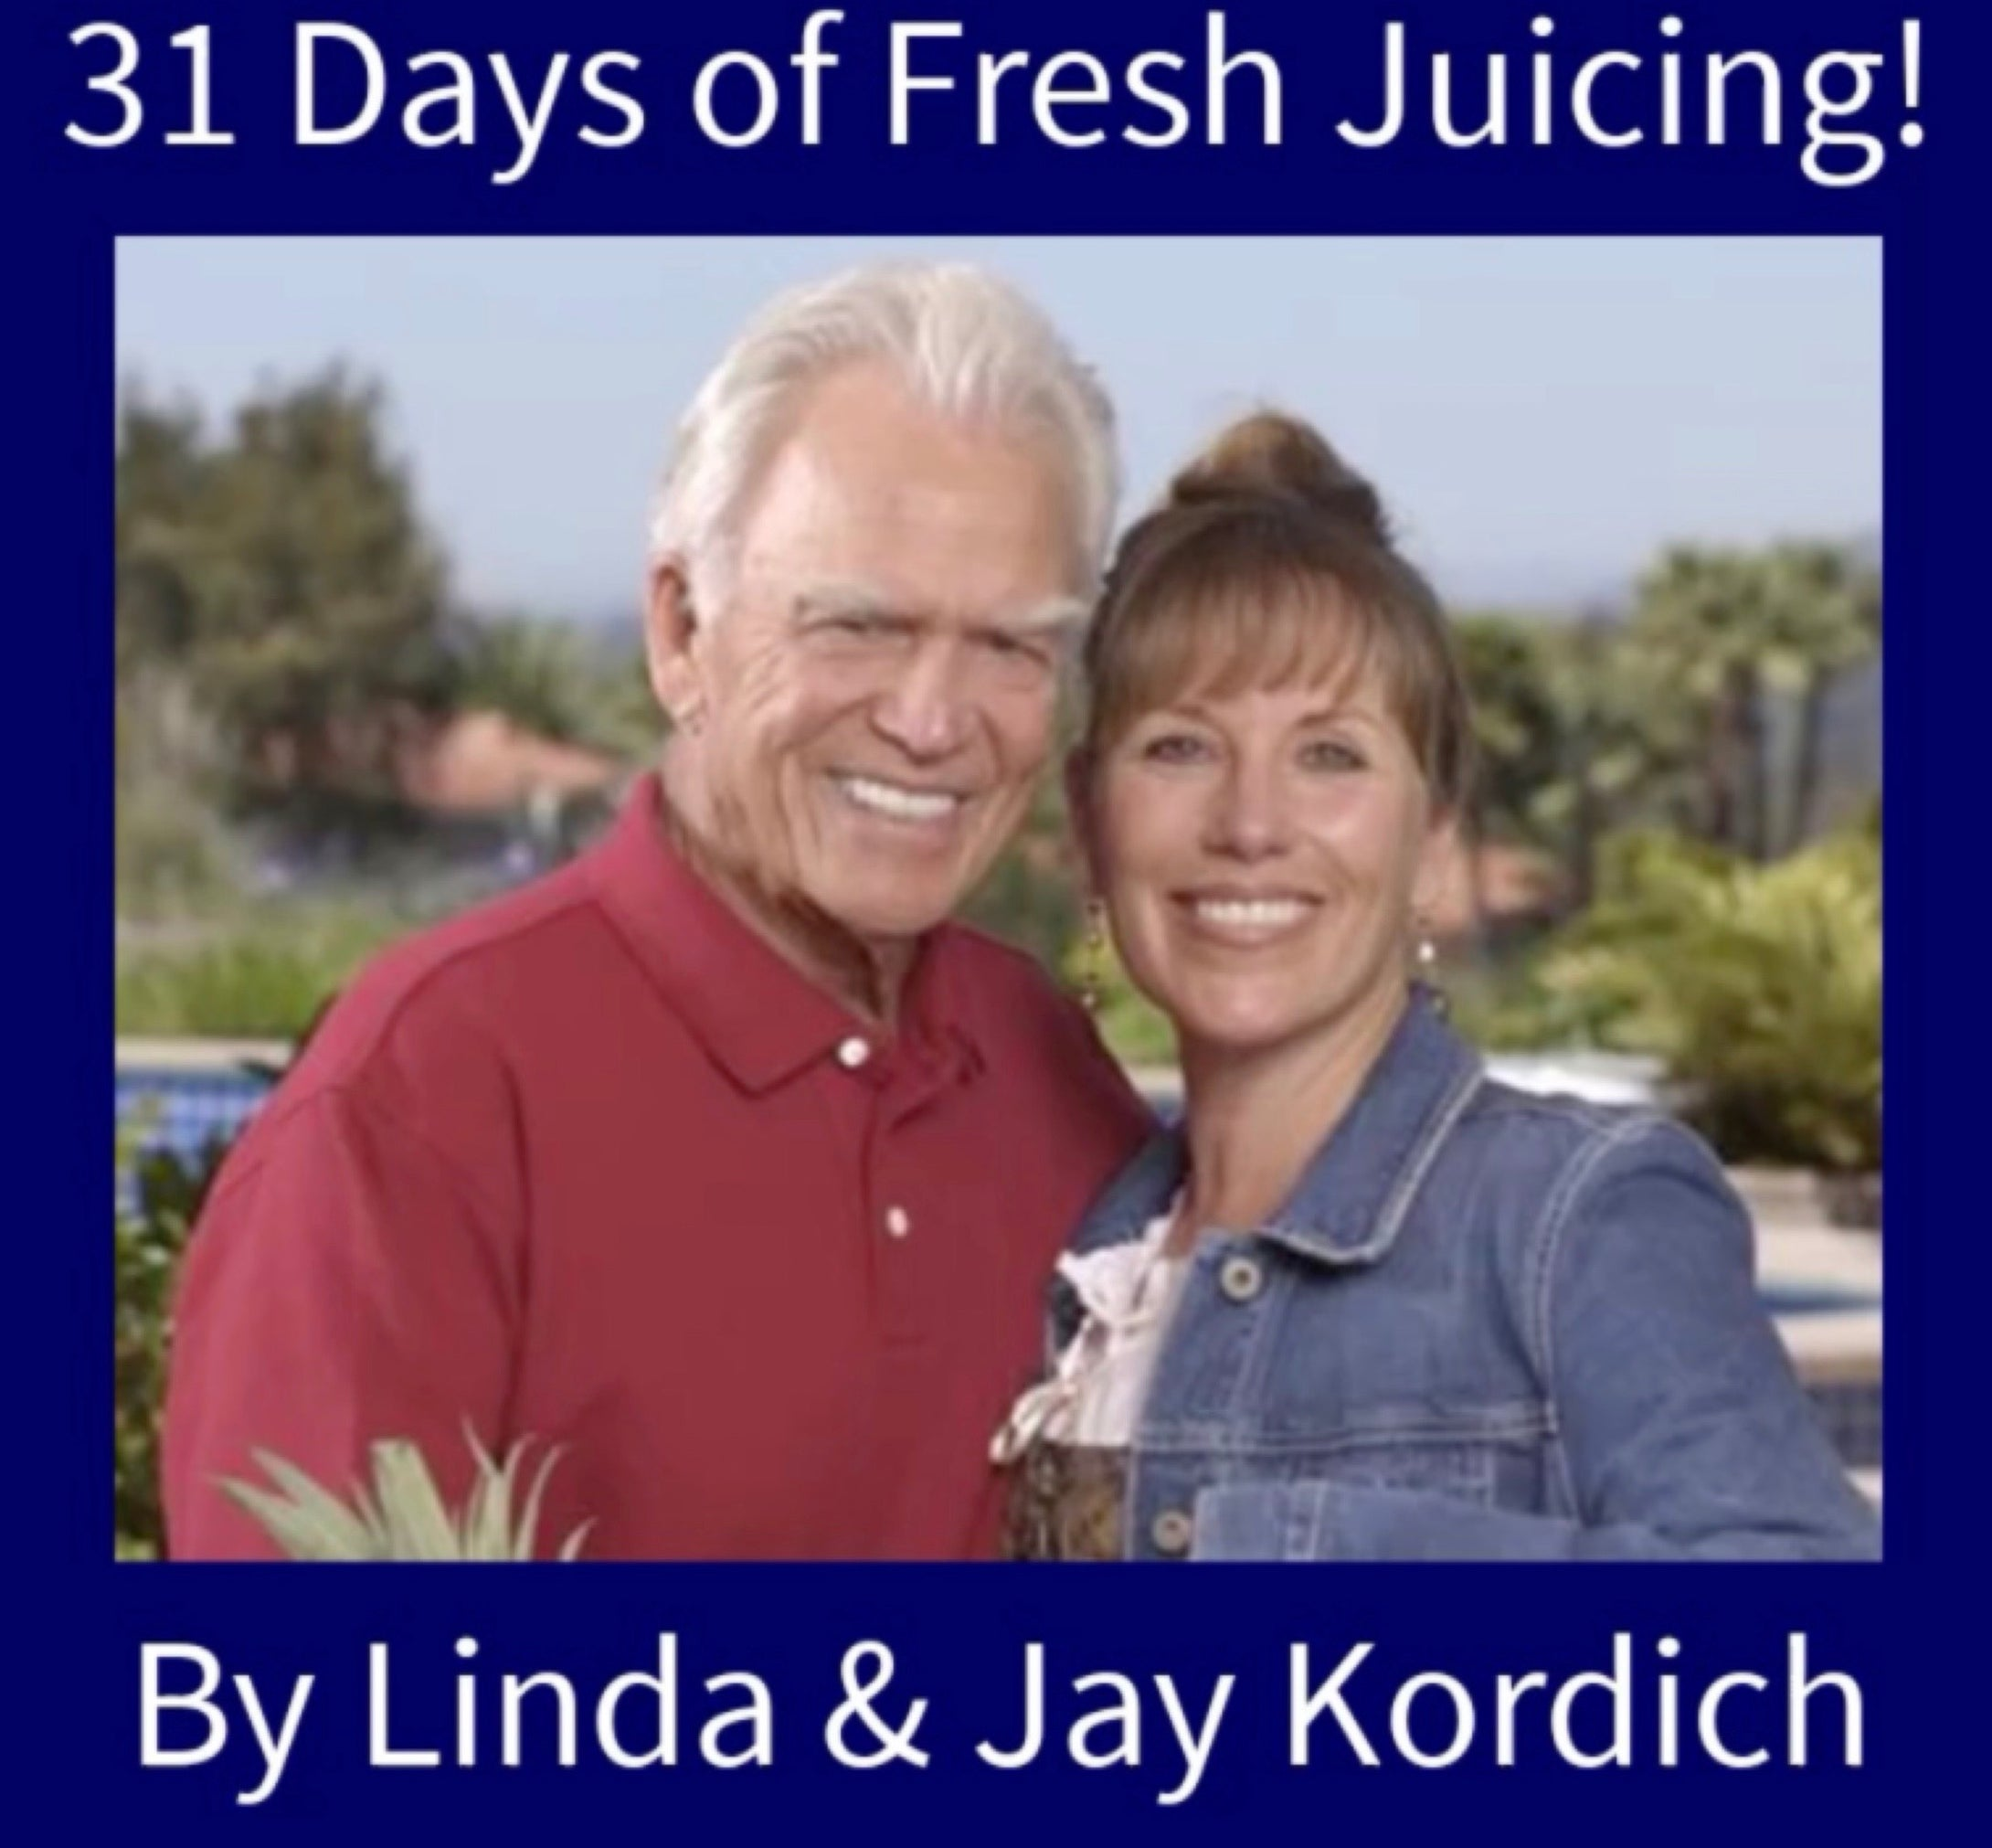 Jay and Linda's 31 Days of Fresh Juicing! (Ebook)